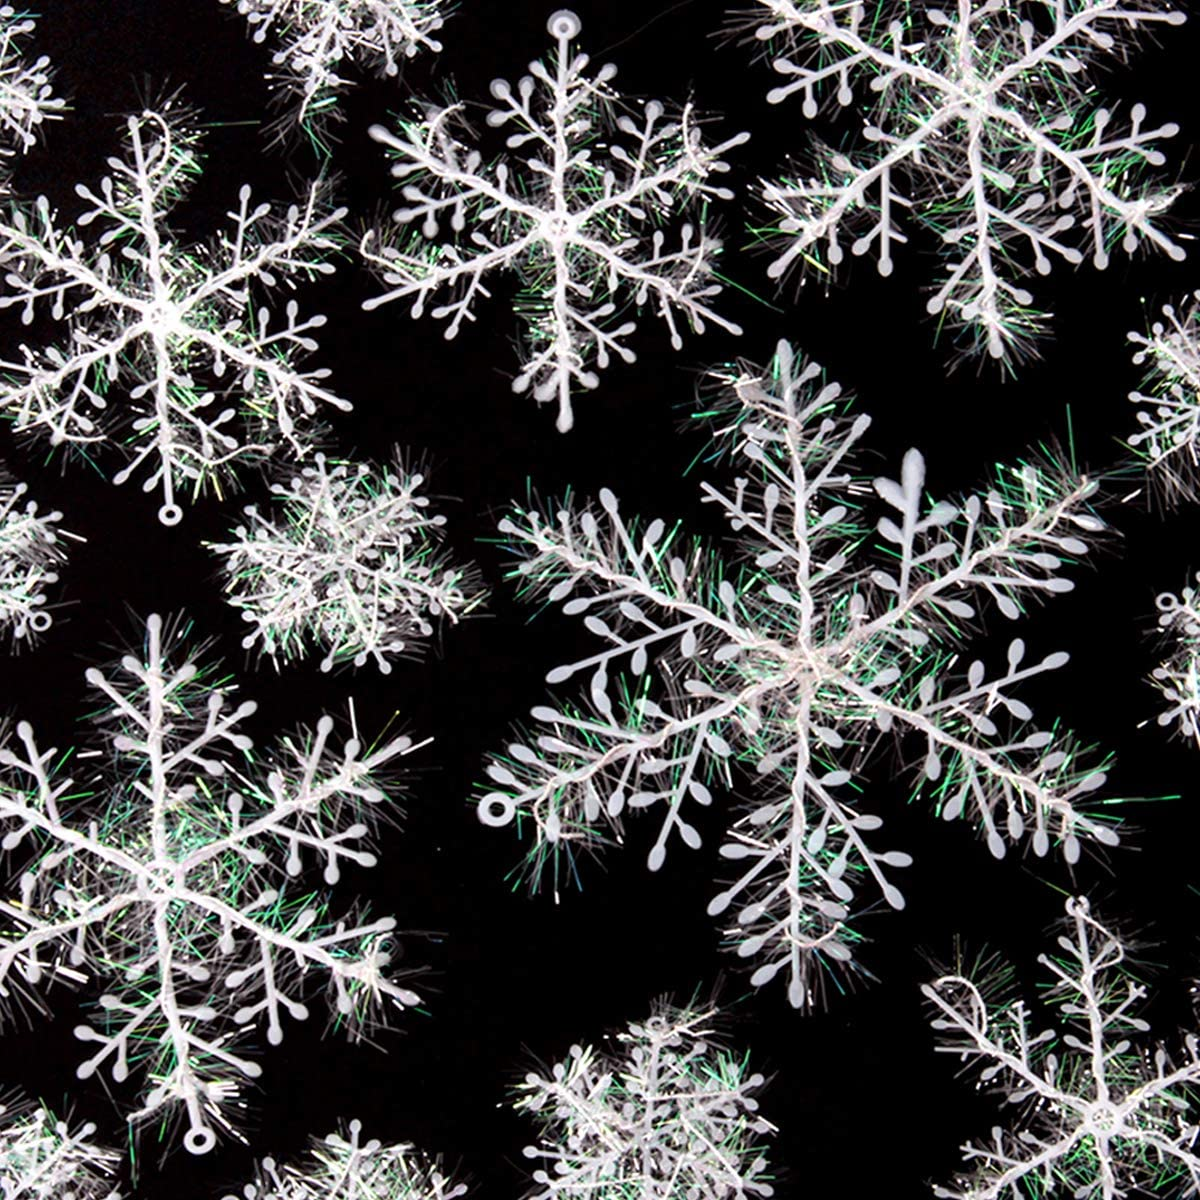 Ira Pollitt 60 Pieces White Snowflakes Winter White Snowflakes Decorations Ornaments Christmas Decoration Accessories for Snowflake Party Supplies, Holiday Party Home Decoration,4 Sizes